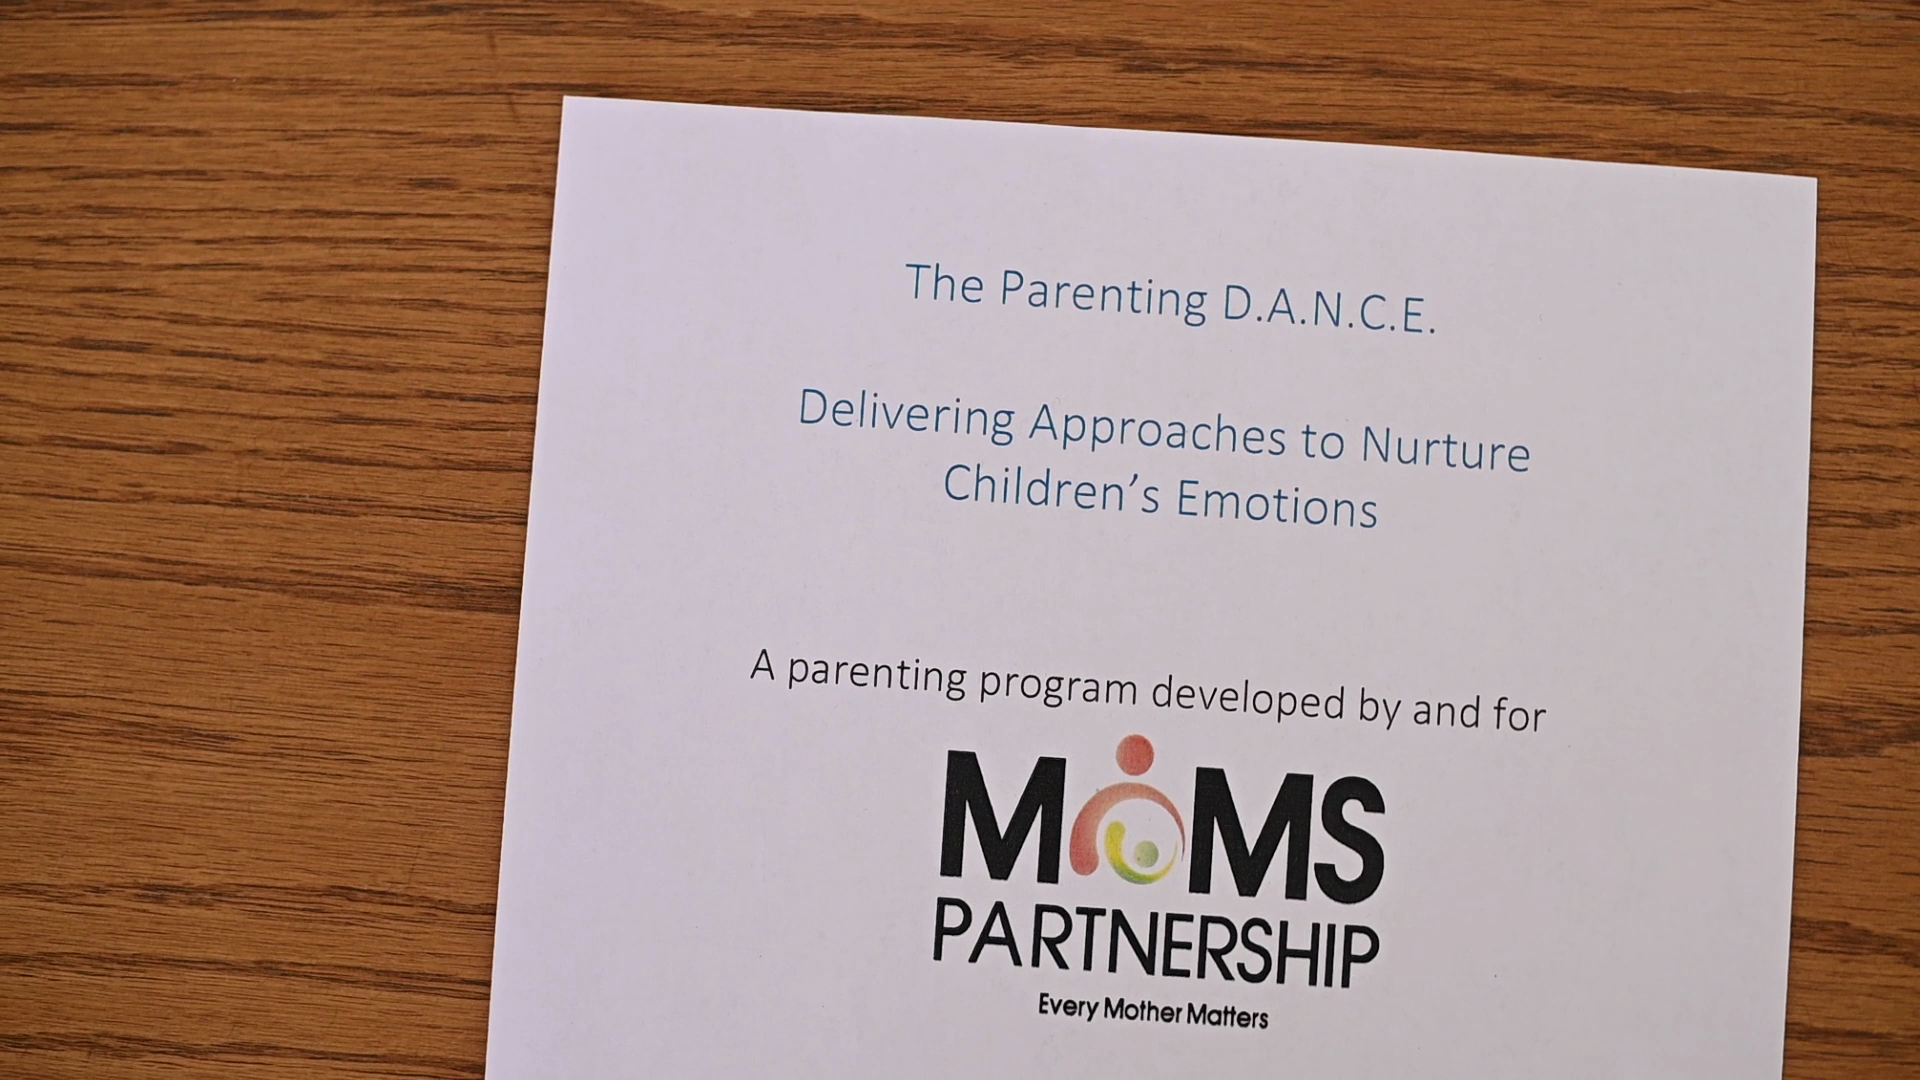 New Haven MOMS Parenting D.A.N.C.E. Information and Testimonials